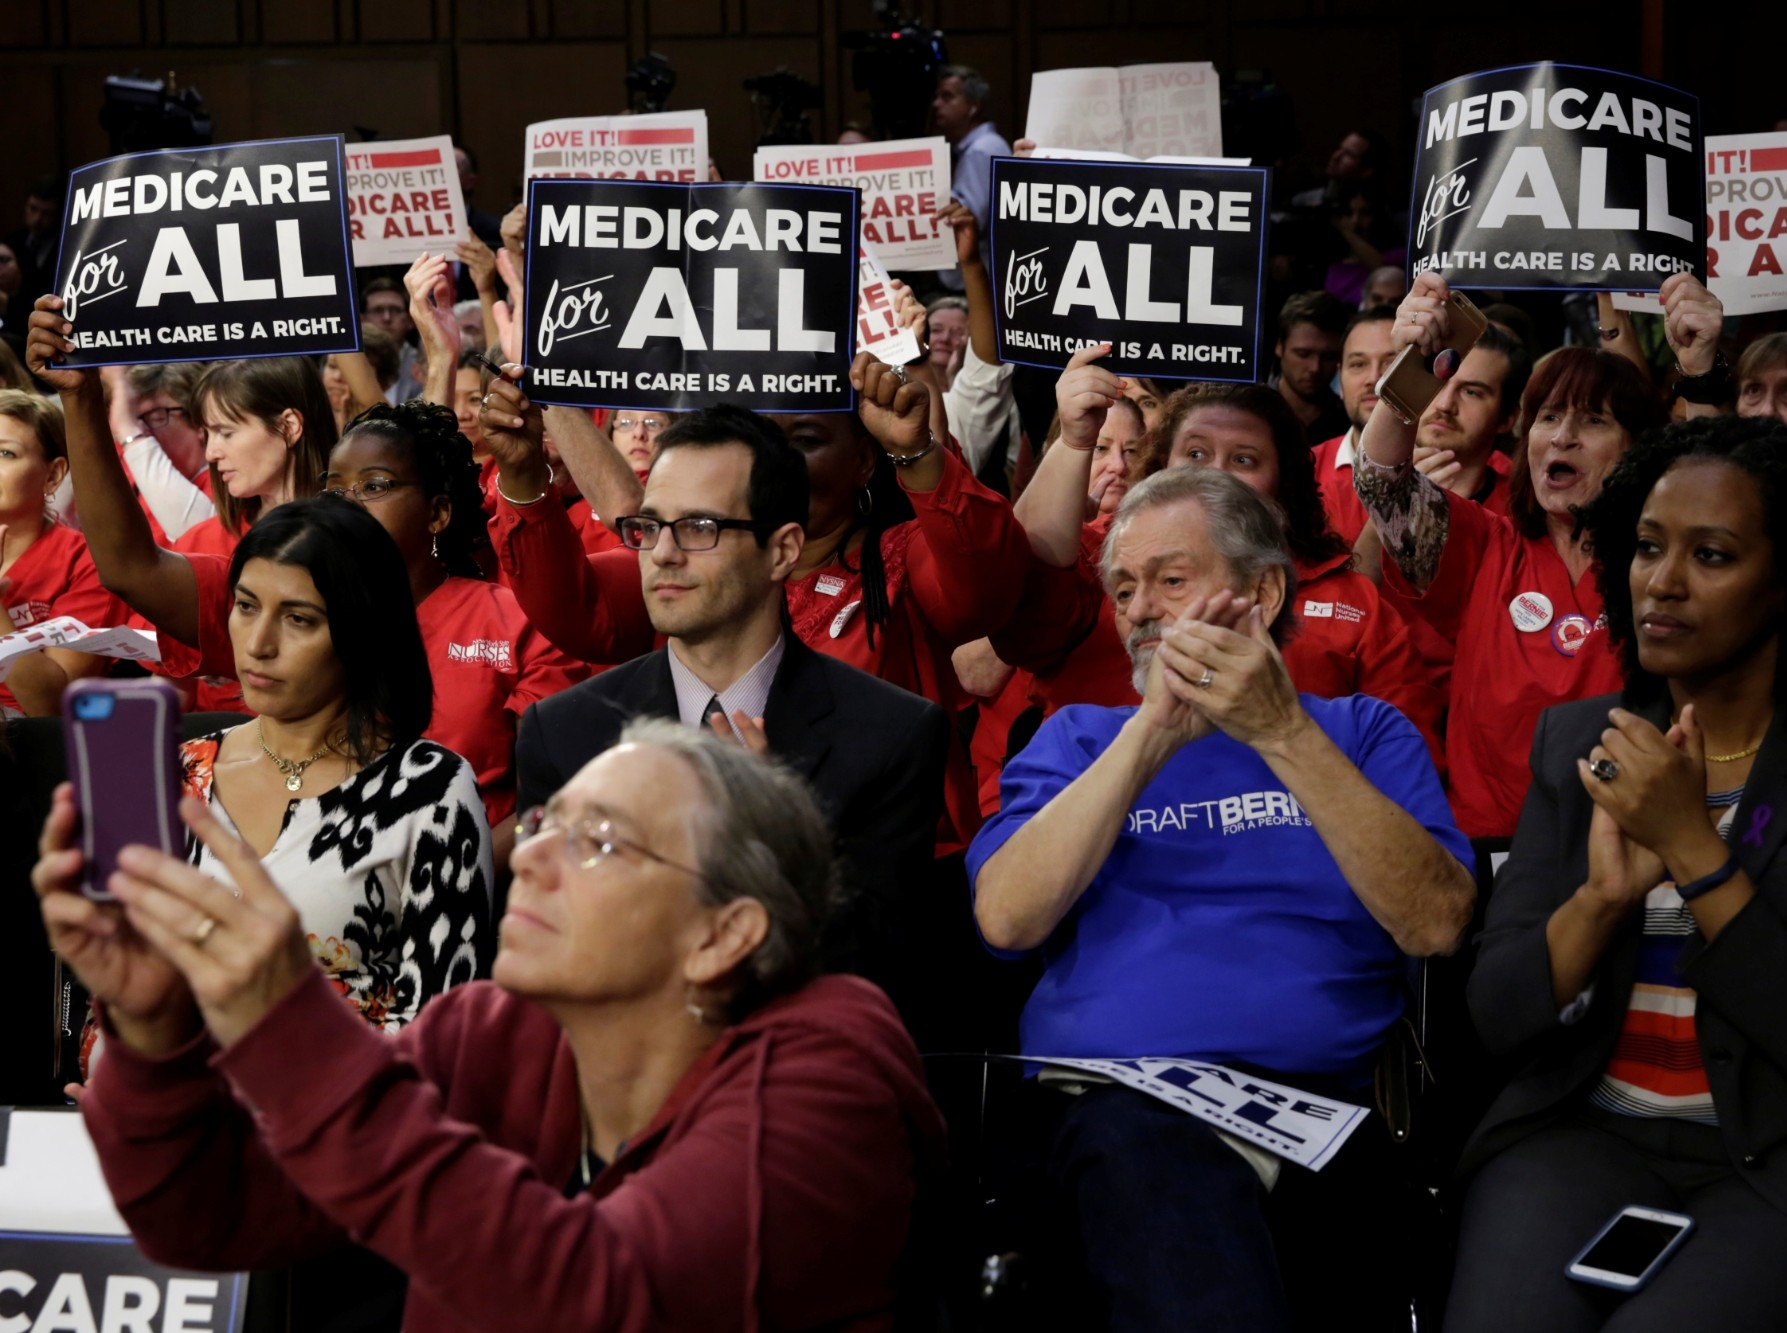 """Supporters of a """"Medicare for All"""" plan gather on Capitol Hill in Washington, D.C., September 13, 2017, photo by Yuri Gripas/Reuters"""